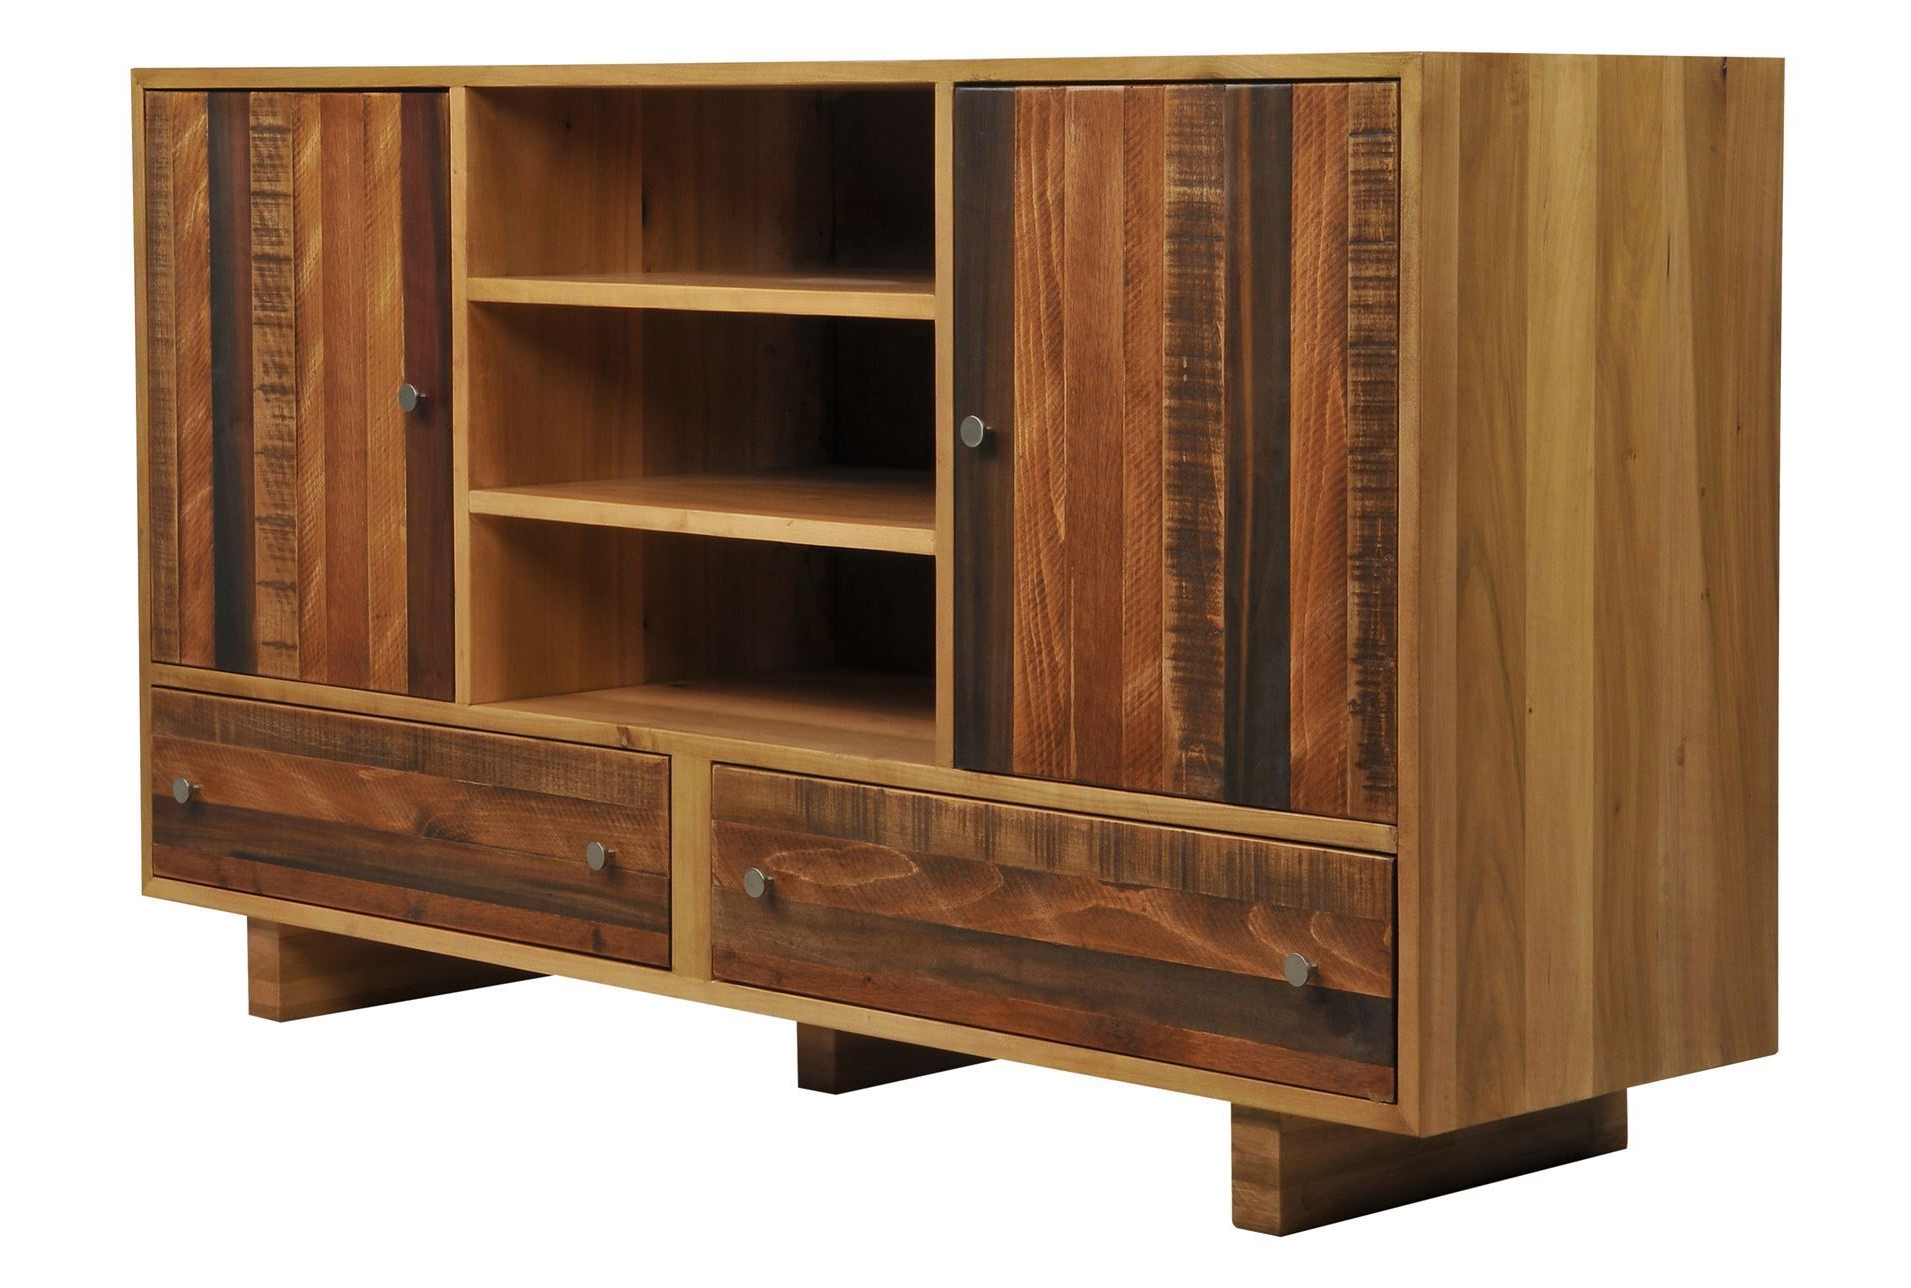 Everett 64 Inch Tv Console | Living Spaces | Pinterest | Consoles Pertaining To Jacen 78 Inch Tv Stands (View 10 of 20)